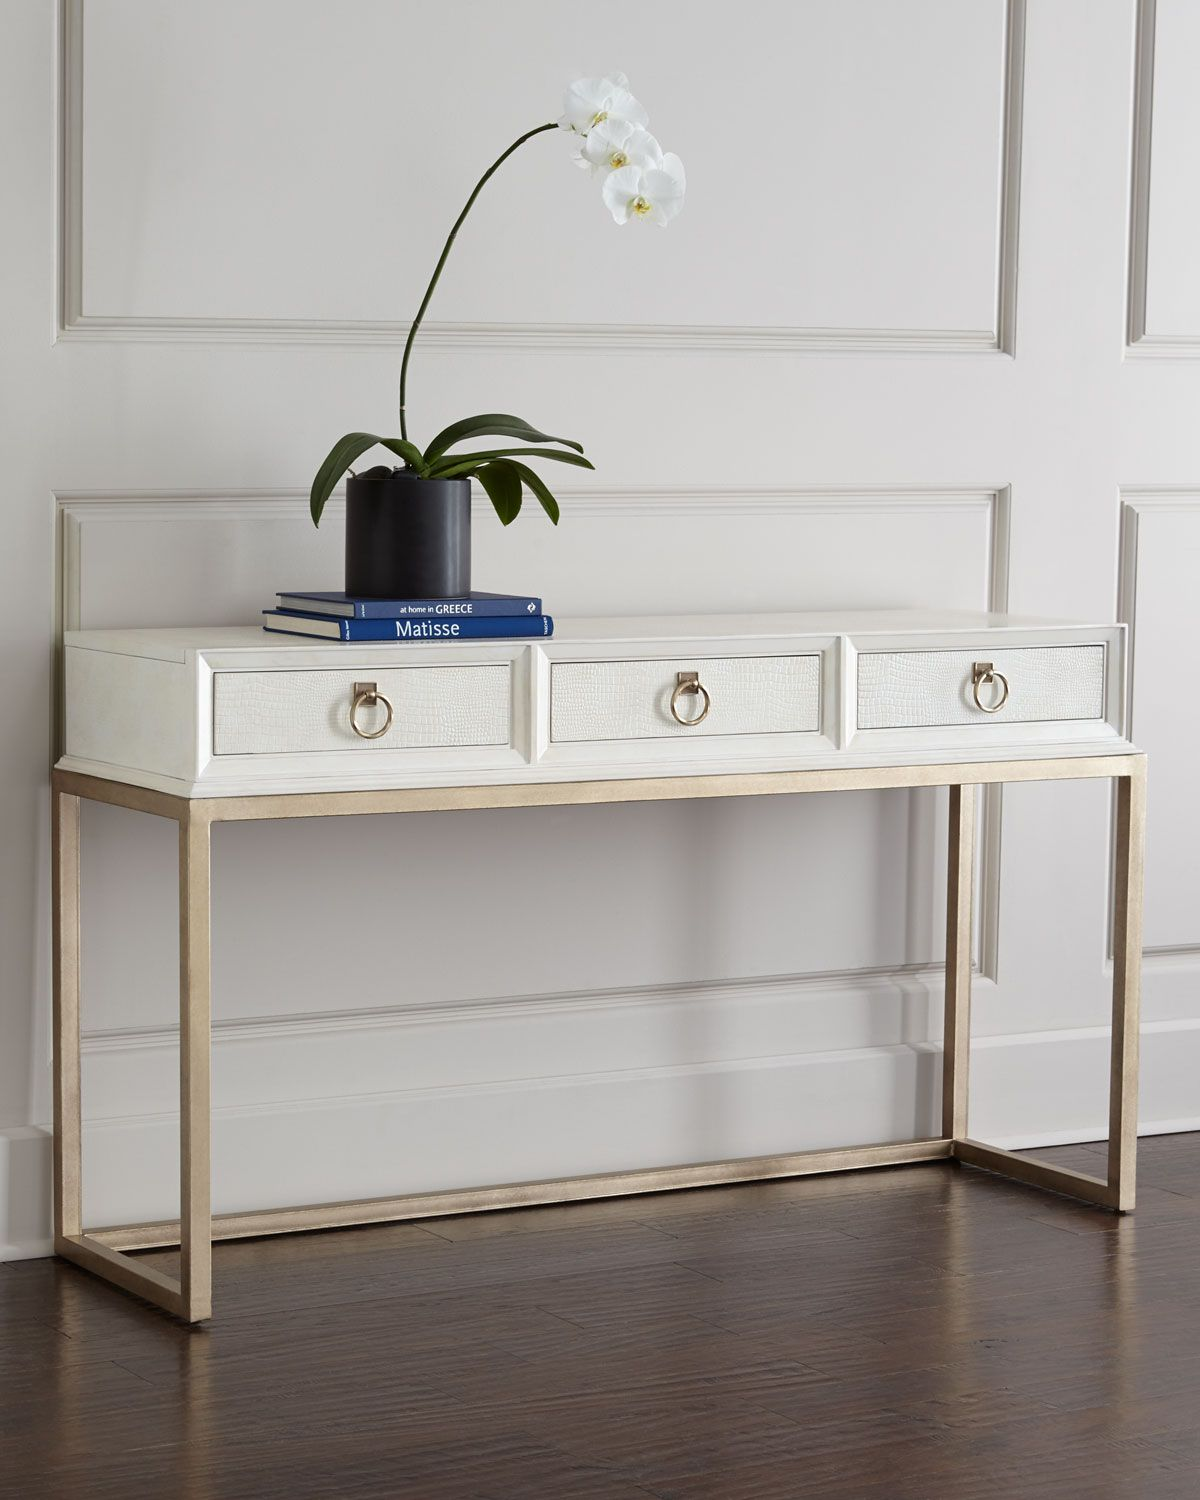 Modern hallway storage gold console table gold metal console table - Tables Daisy Console I Horchow White Faux Croc Console Table White Croc Embossed Leather Console White Console With Gold Base Modern White And Gold